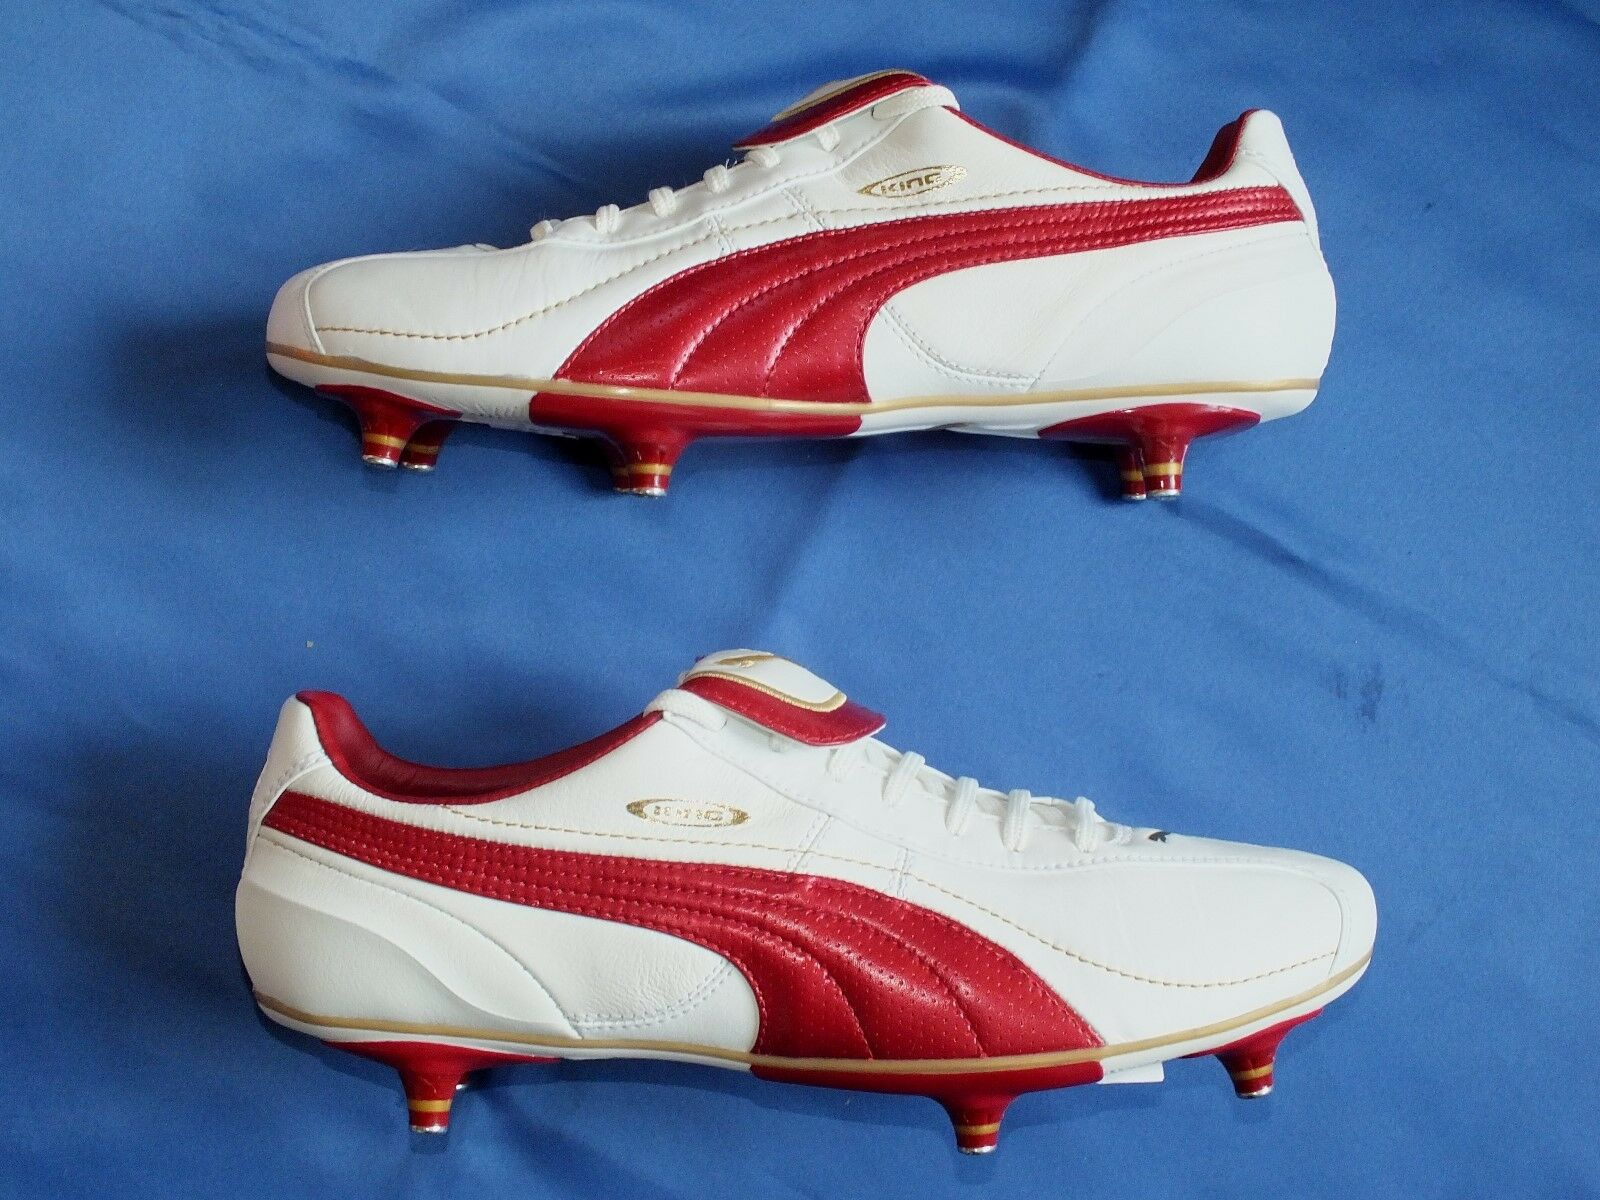 New Puma Retro Soft Ground Leder Grass Weiß ROT & Gold Leder Ground Football Stiefel UK 9 e257ba